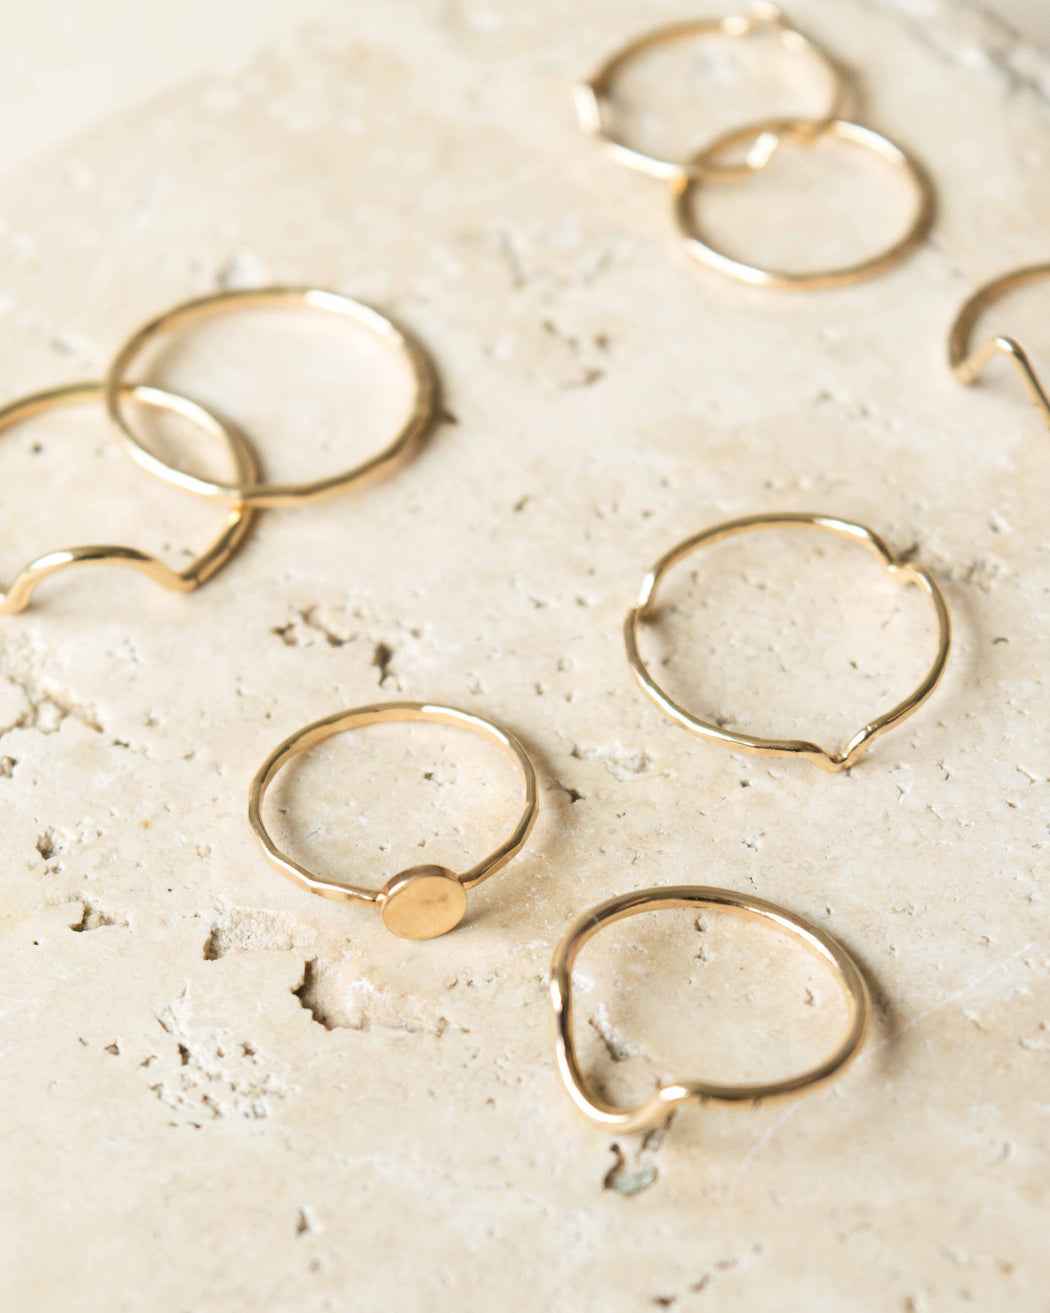 Goldeluxe Jewelry - Peak Stacking Ring | 14k Gold-Filled